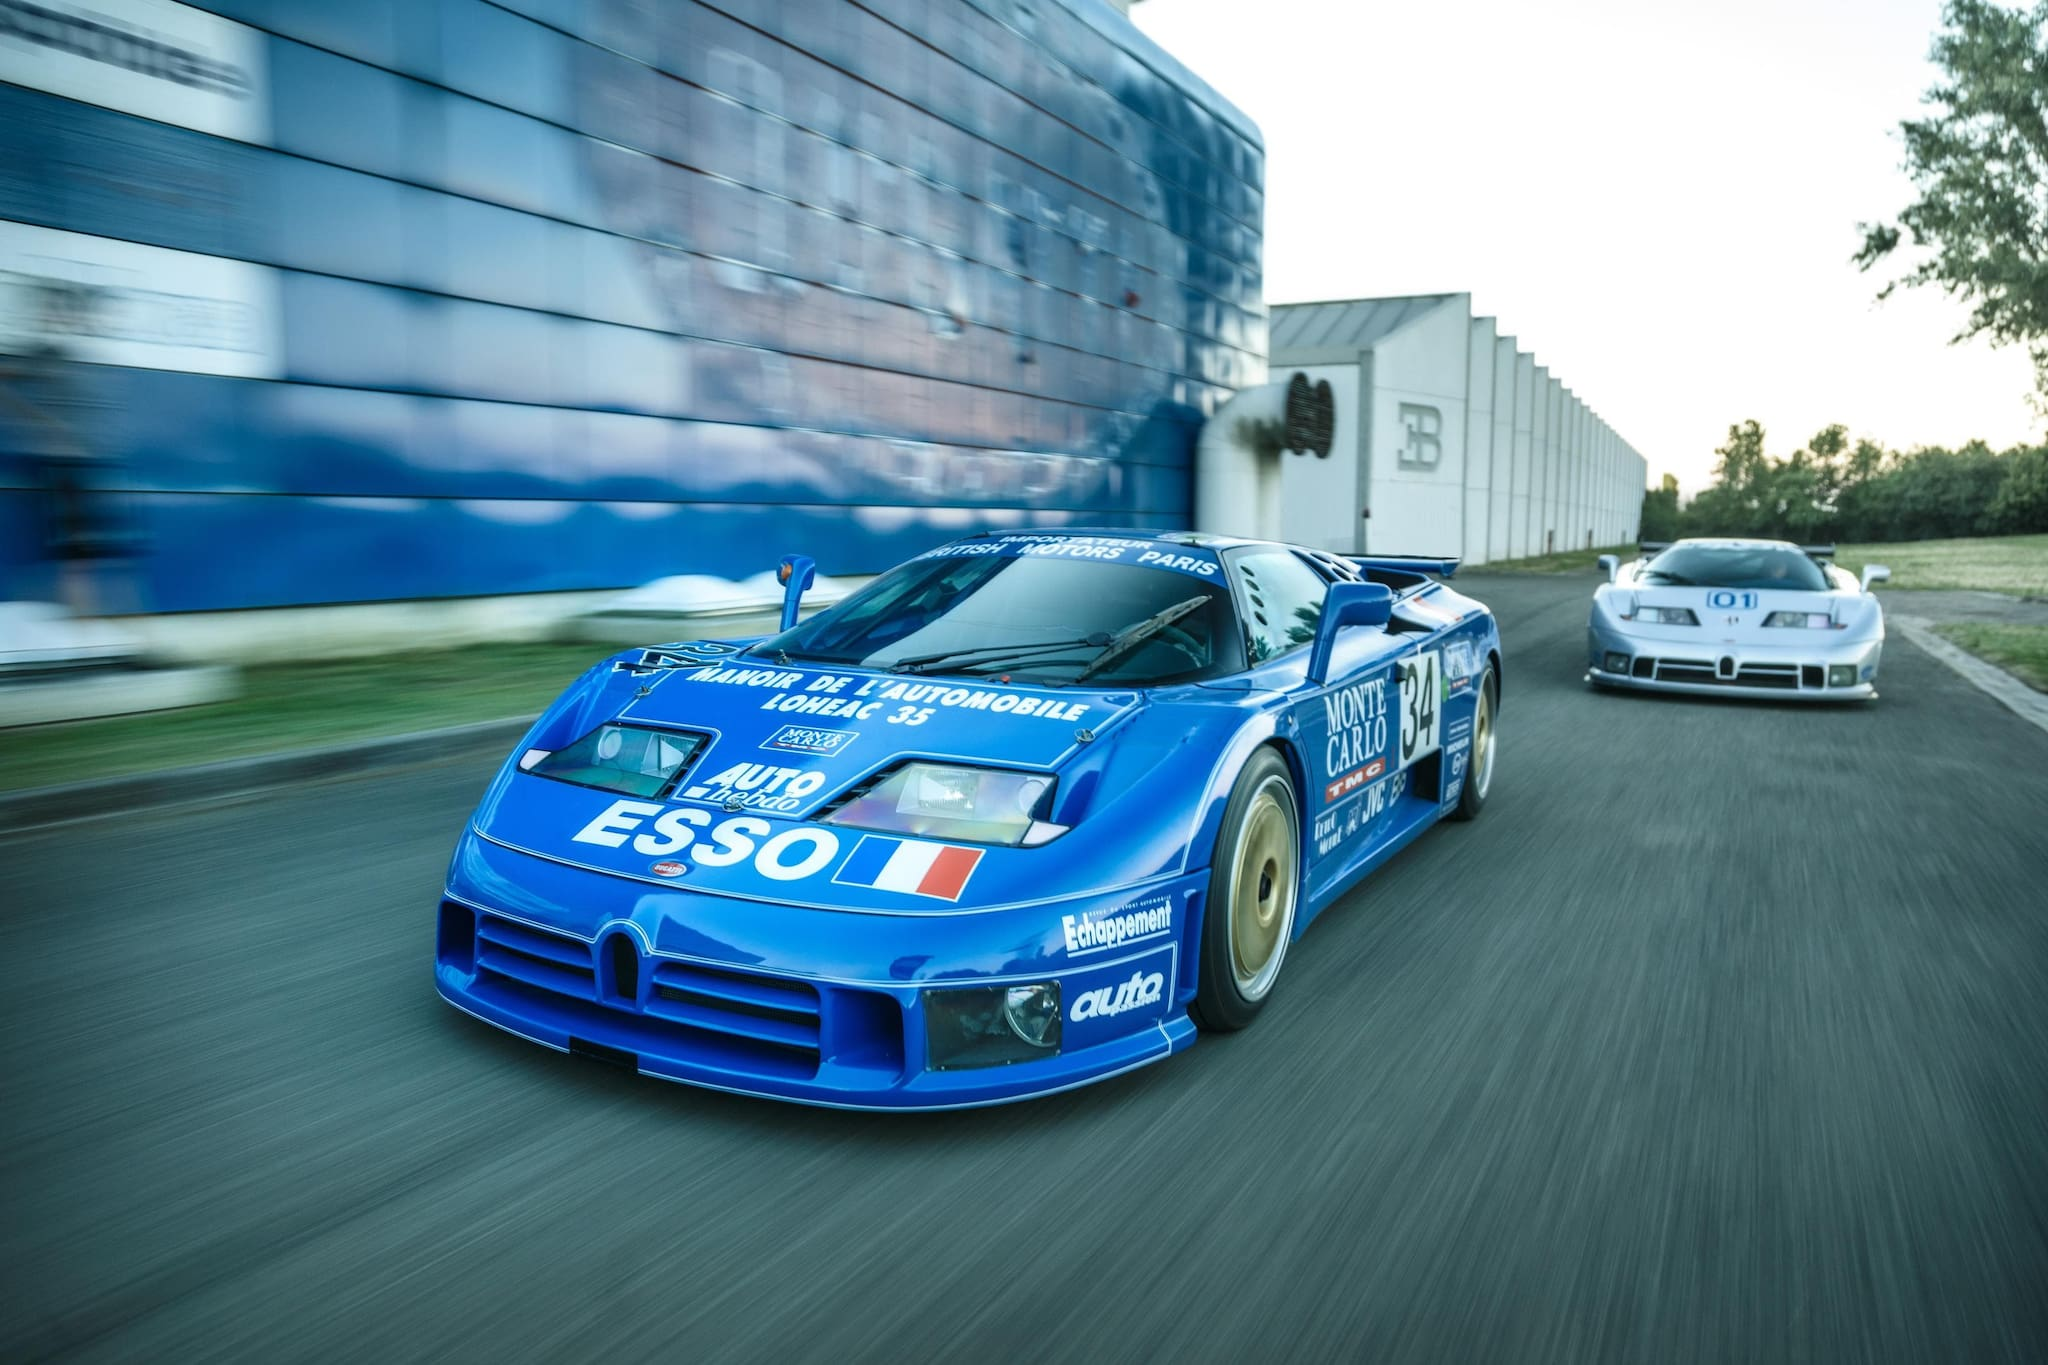 WATCH: The Story of Bugatti's Two EB 110 Race Cars